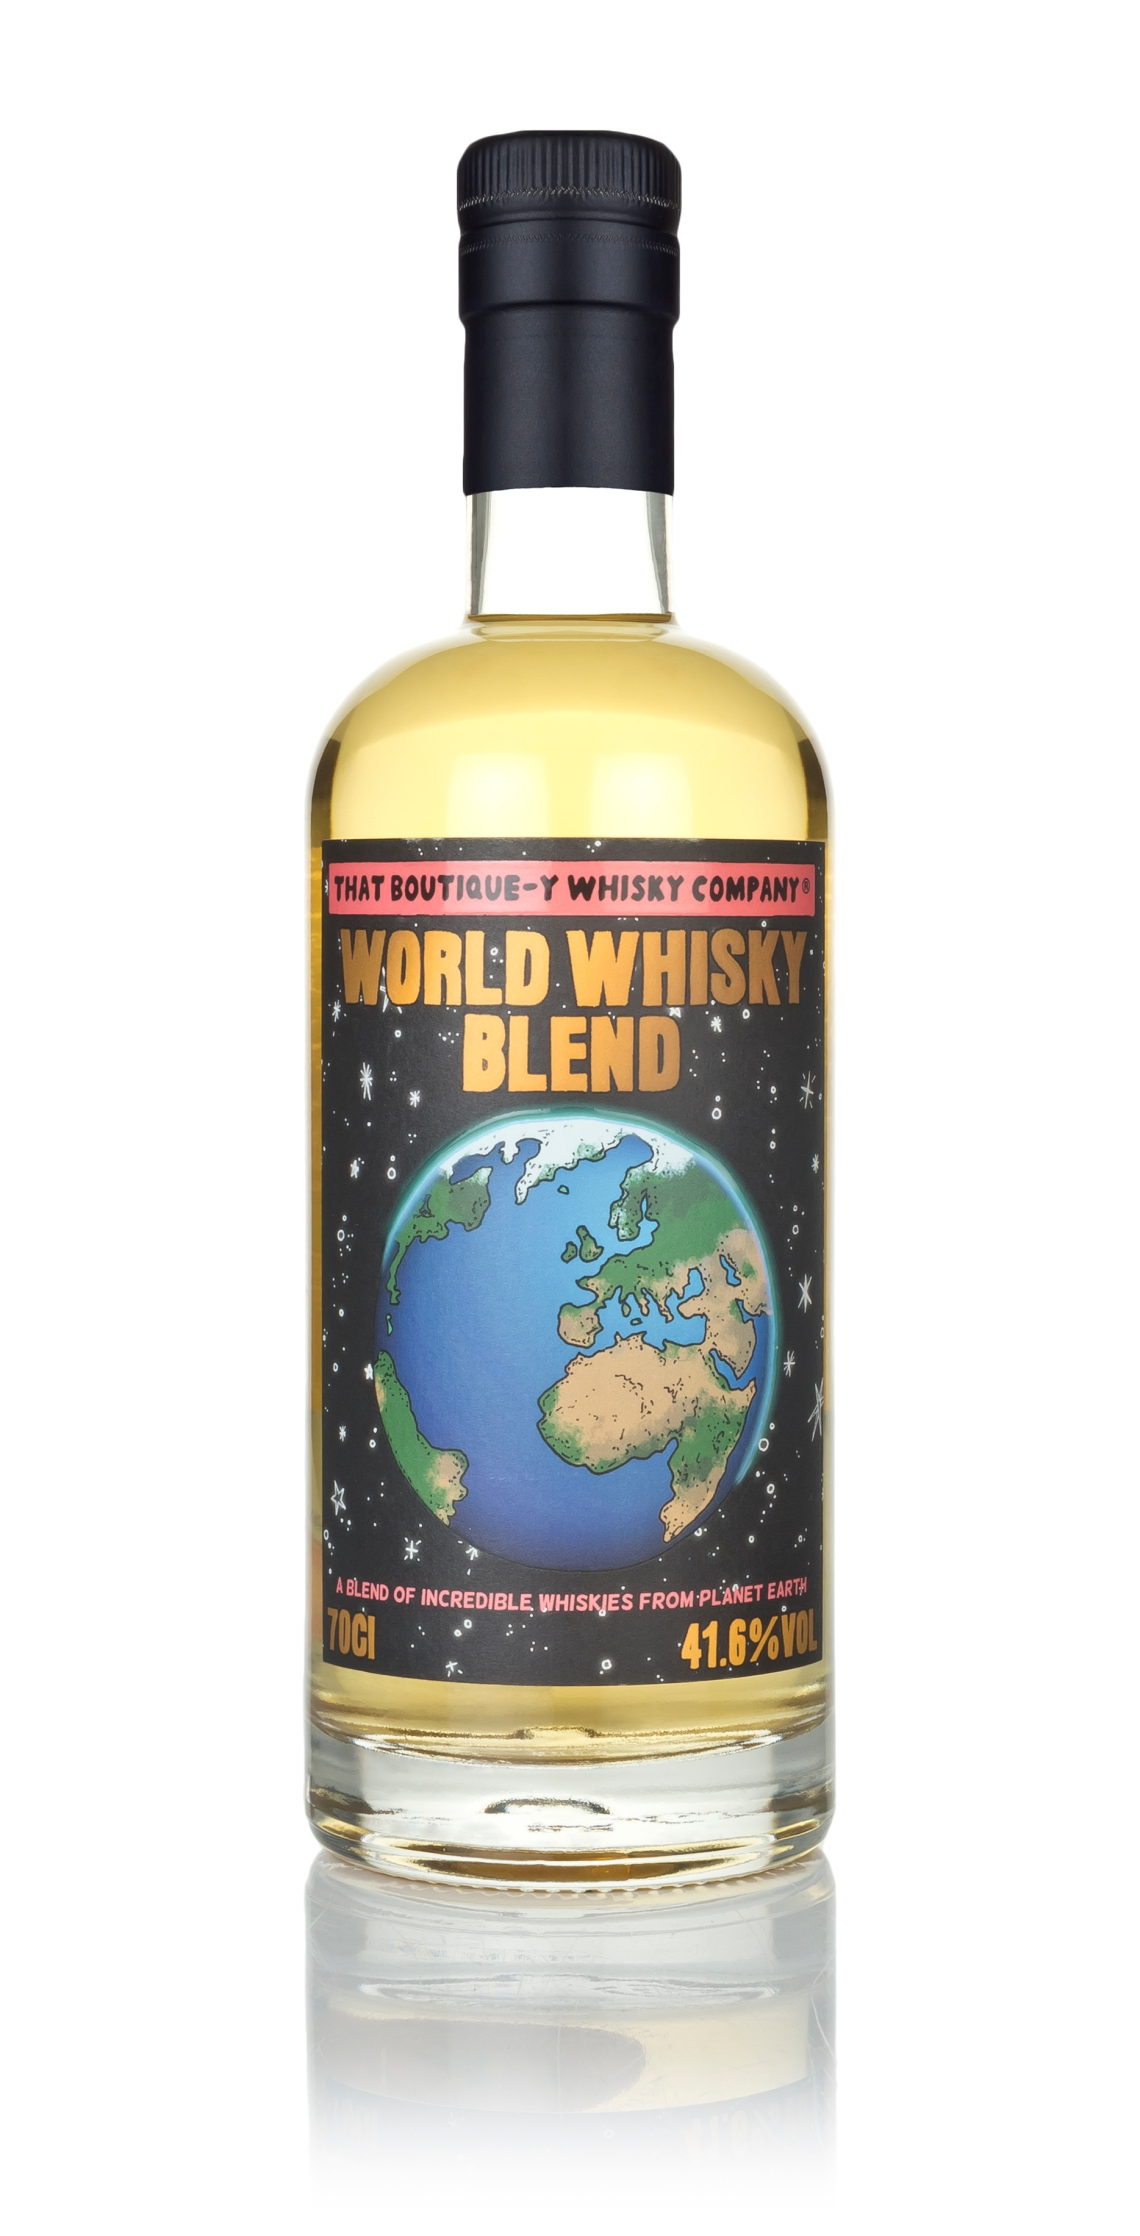 TBWC World Whisky Blend - 70cl pack shot with reflection